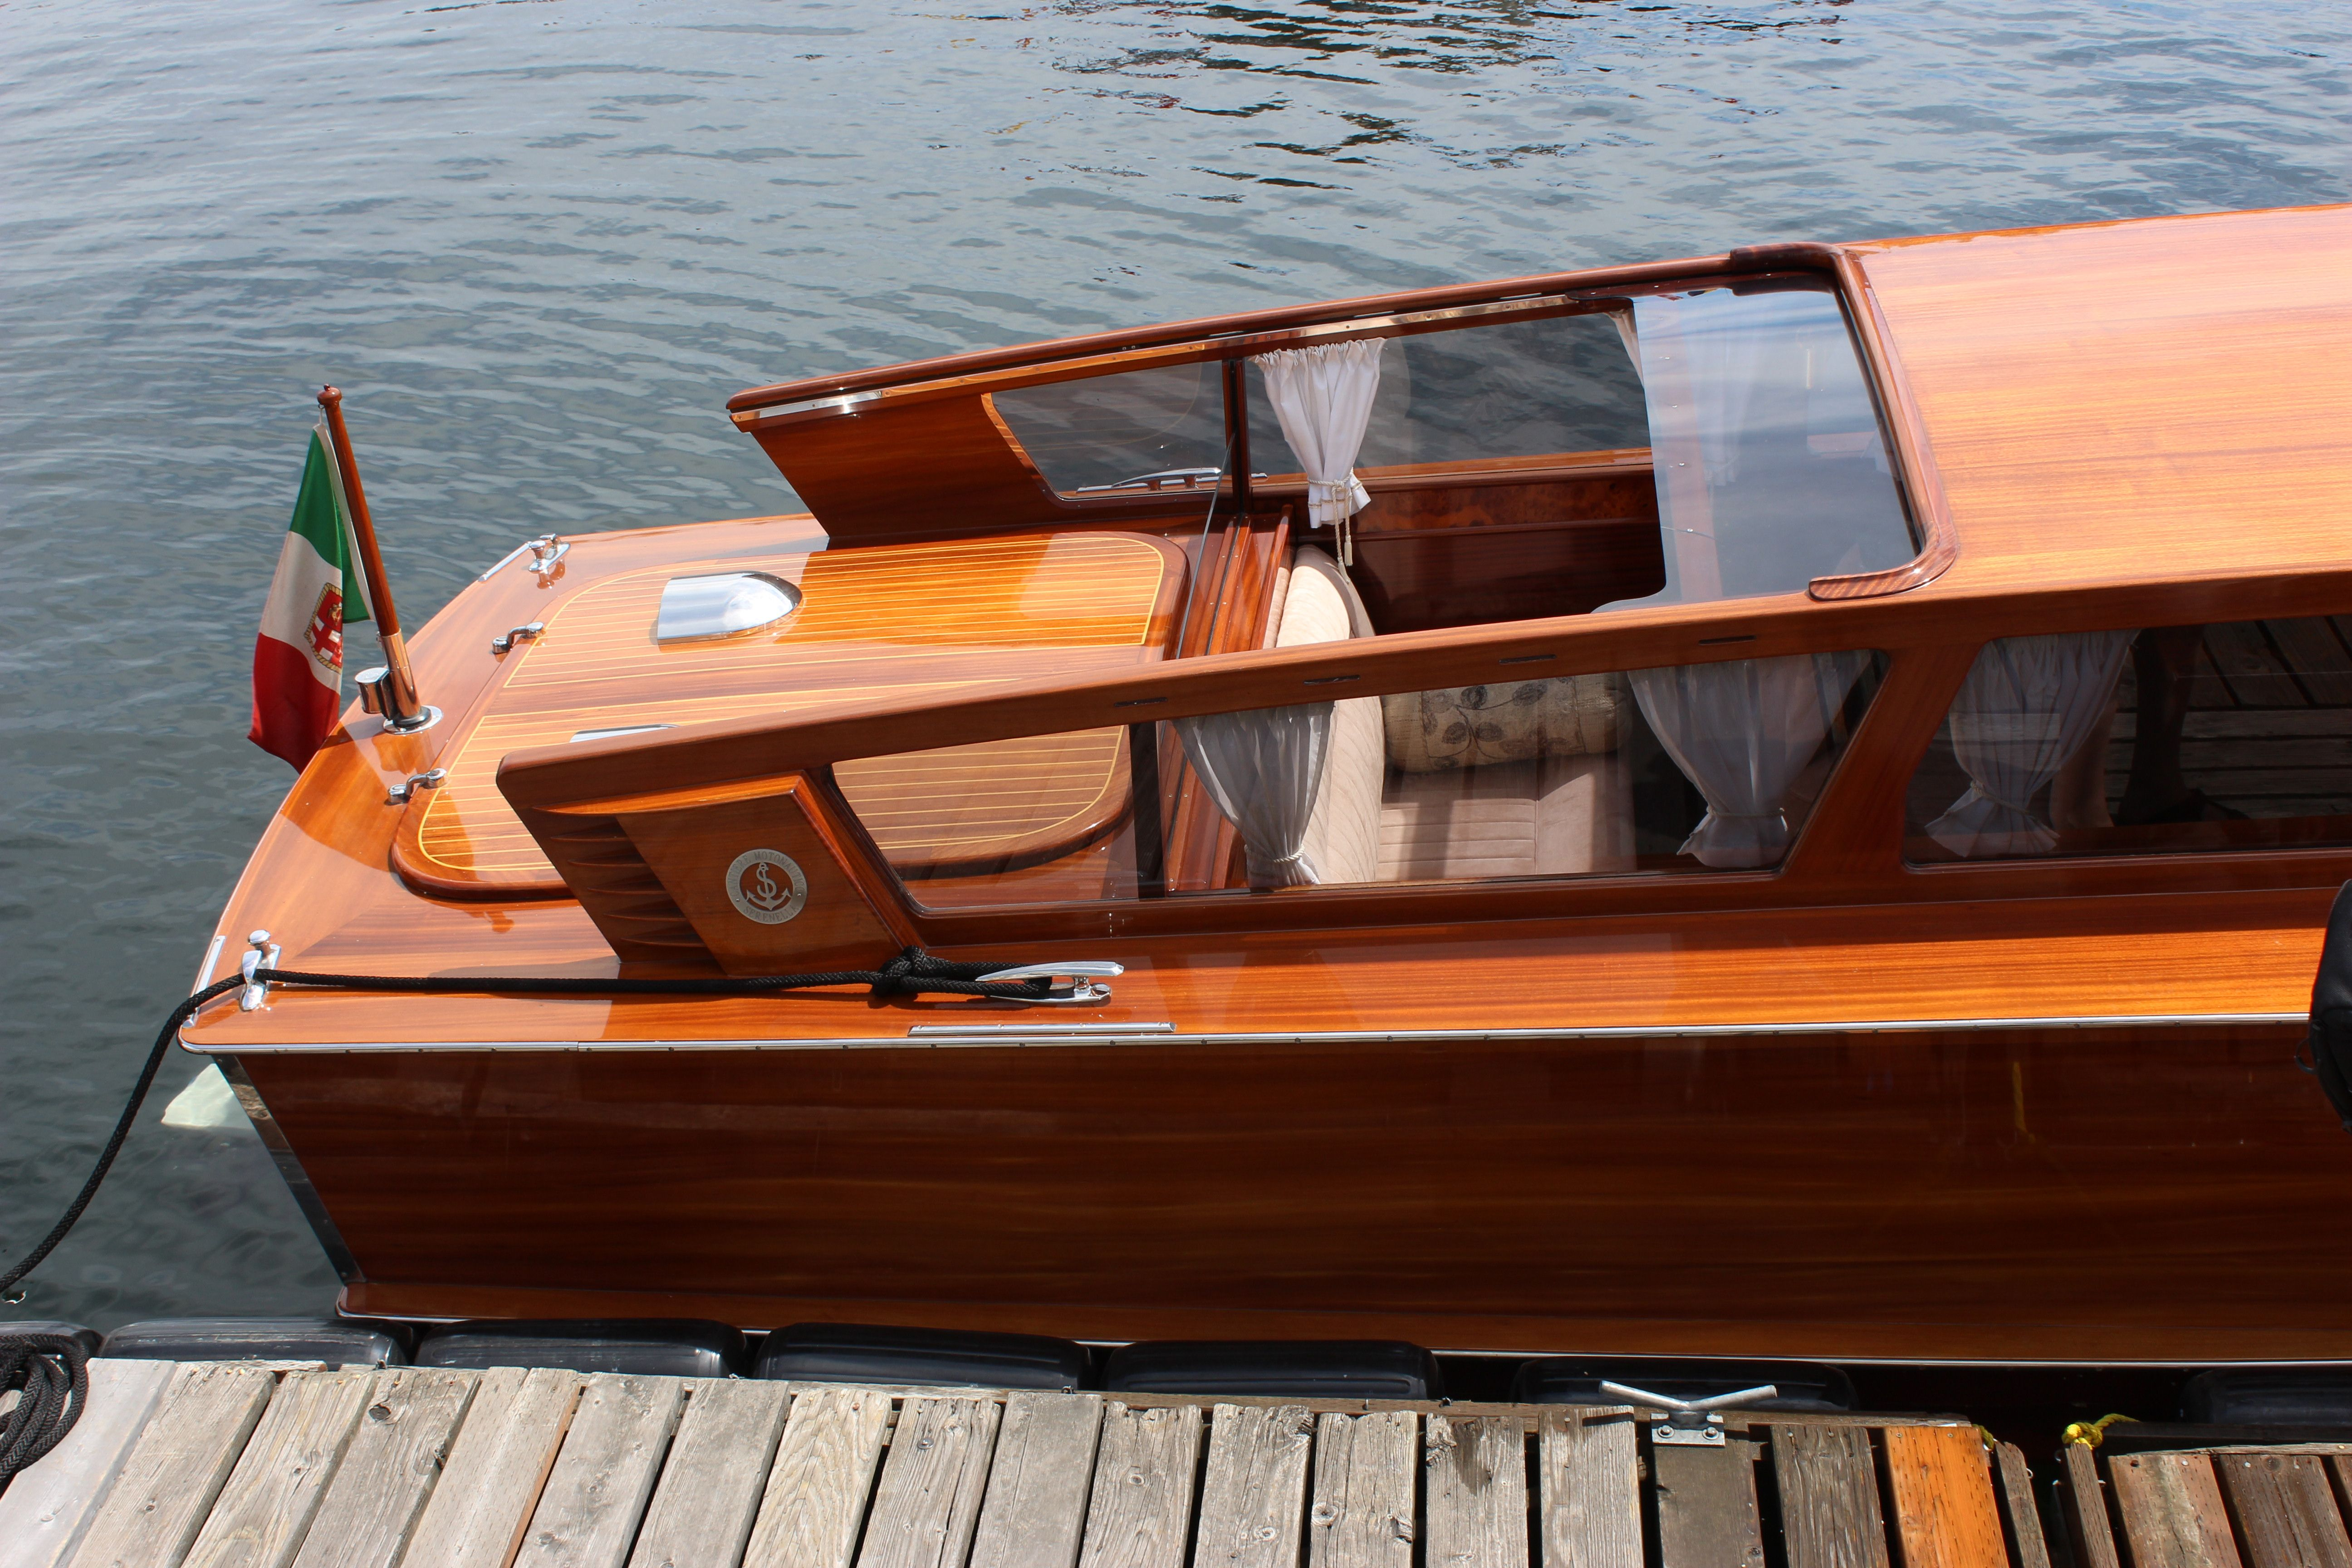 How to build wooden boat roofhow to make a wooden boat